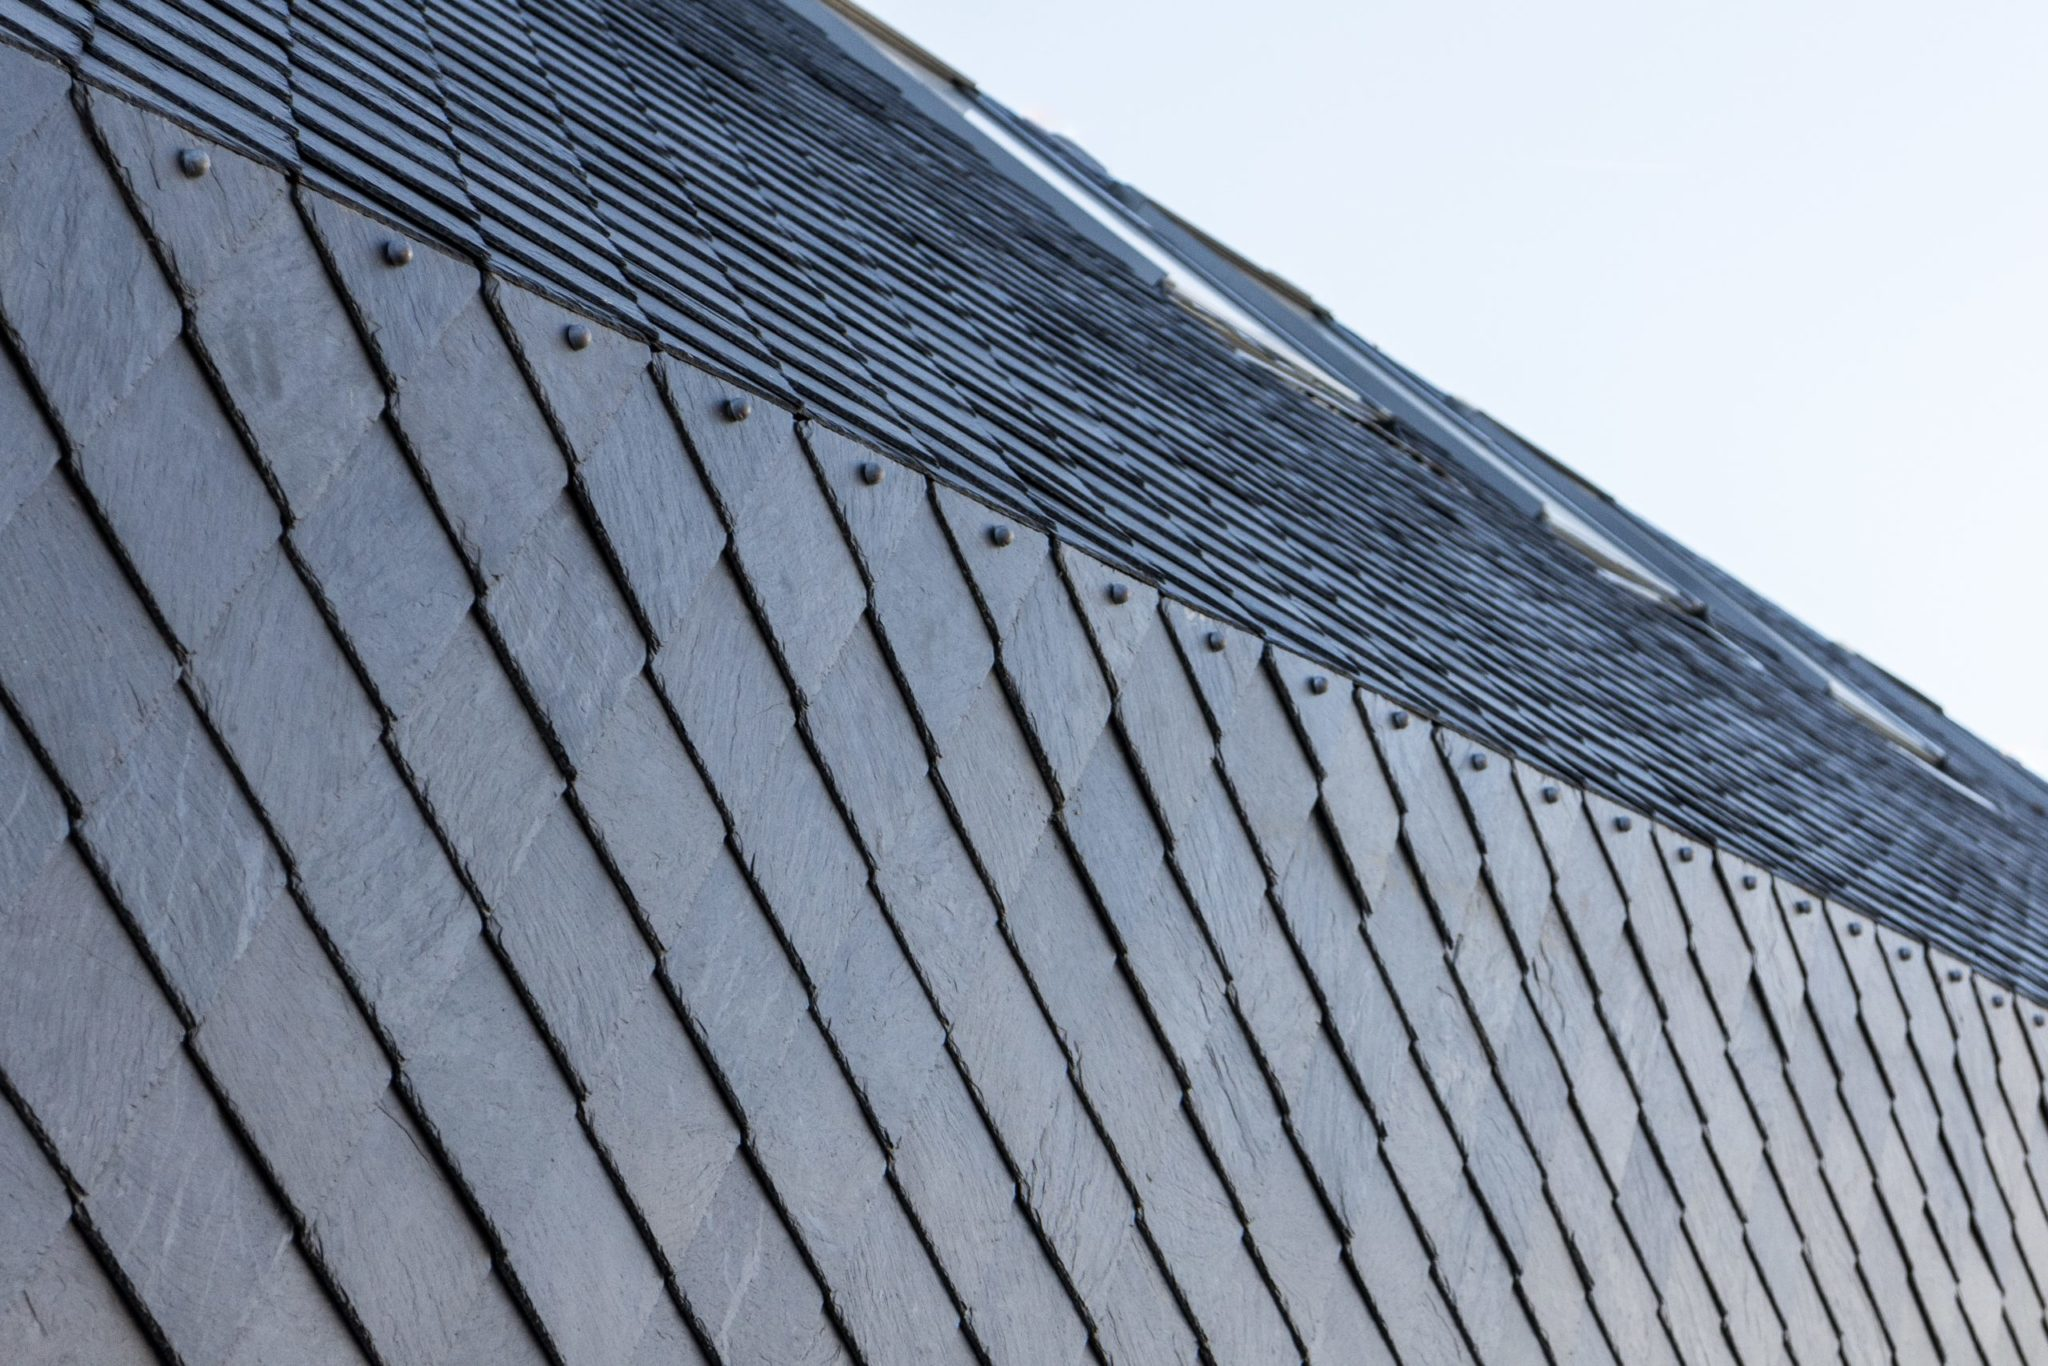 Roof close up detail of Ewell grove primary school